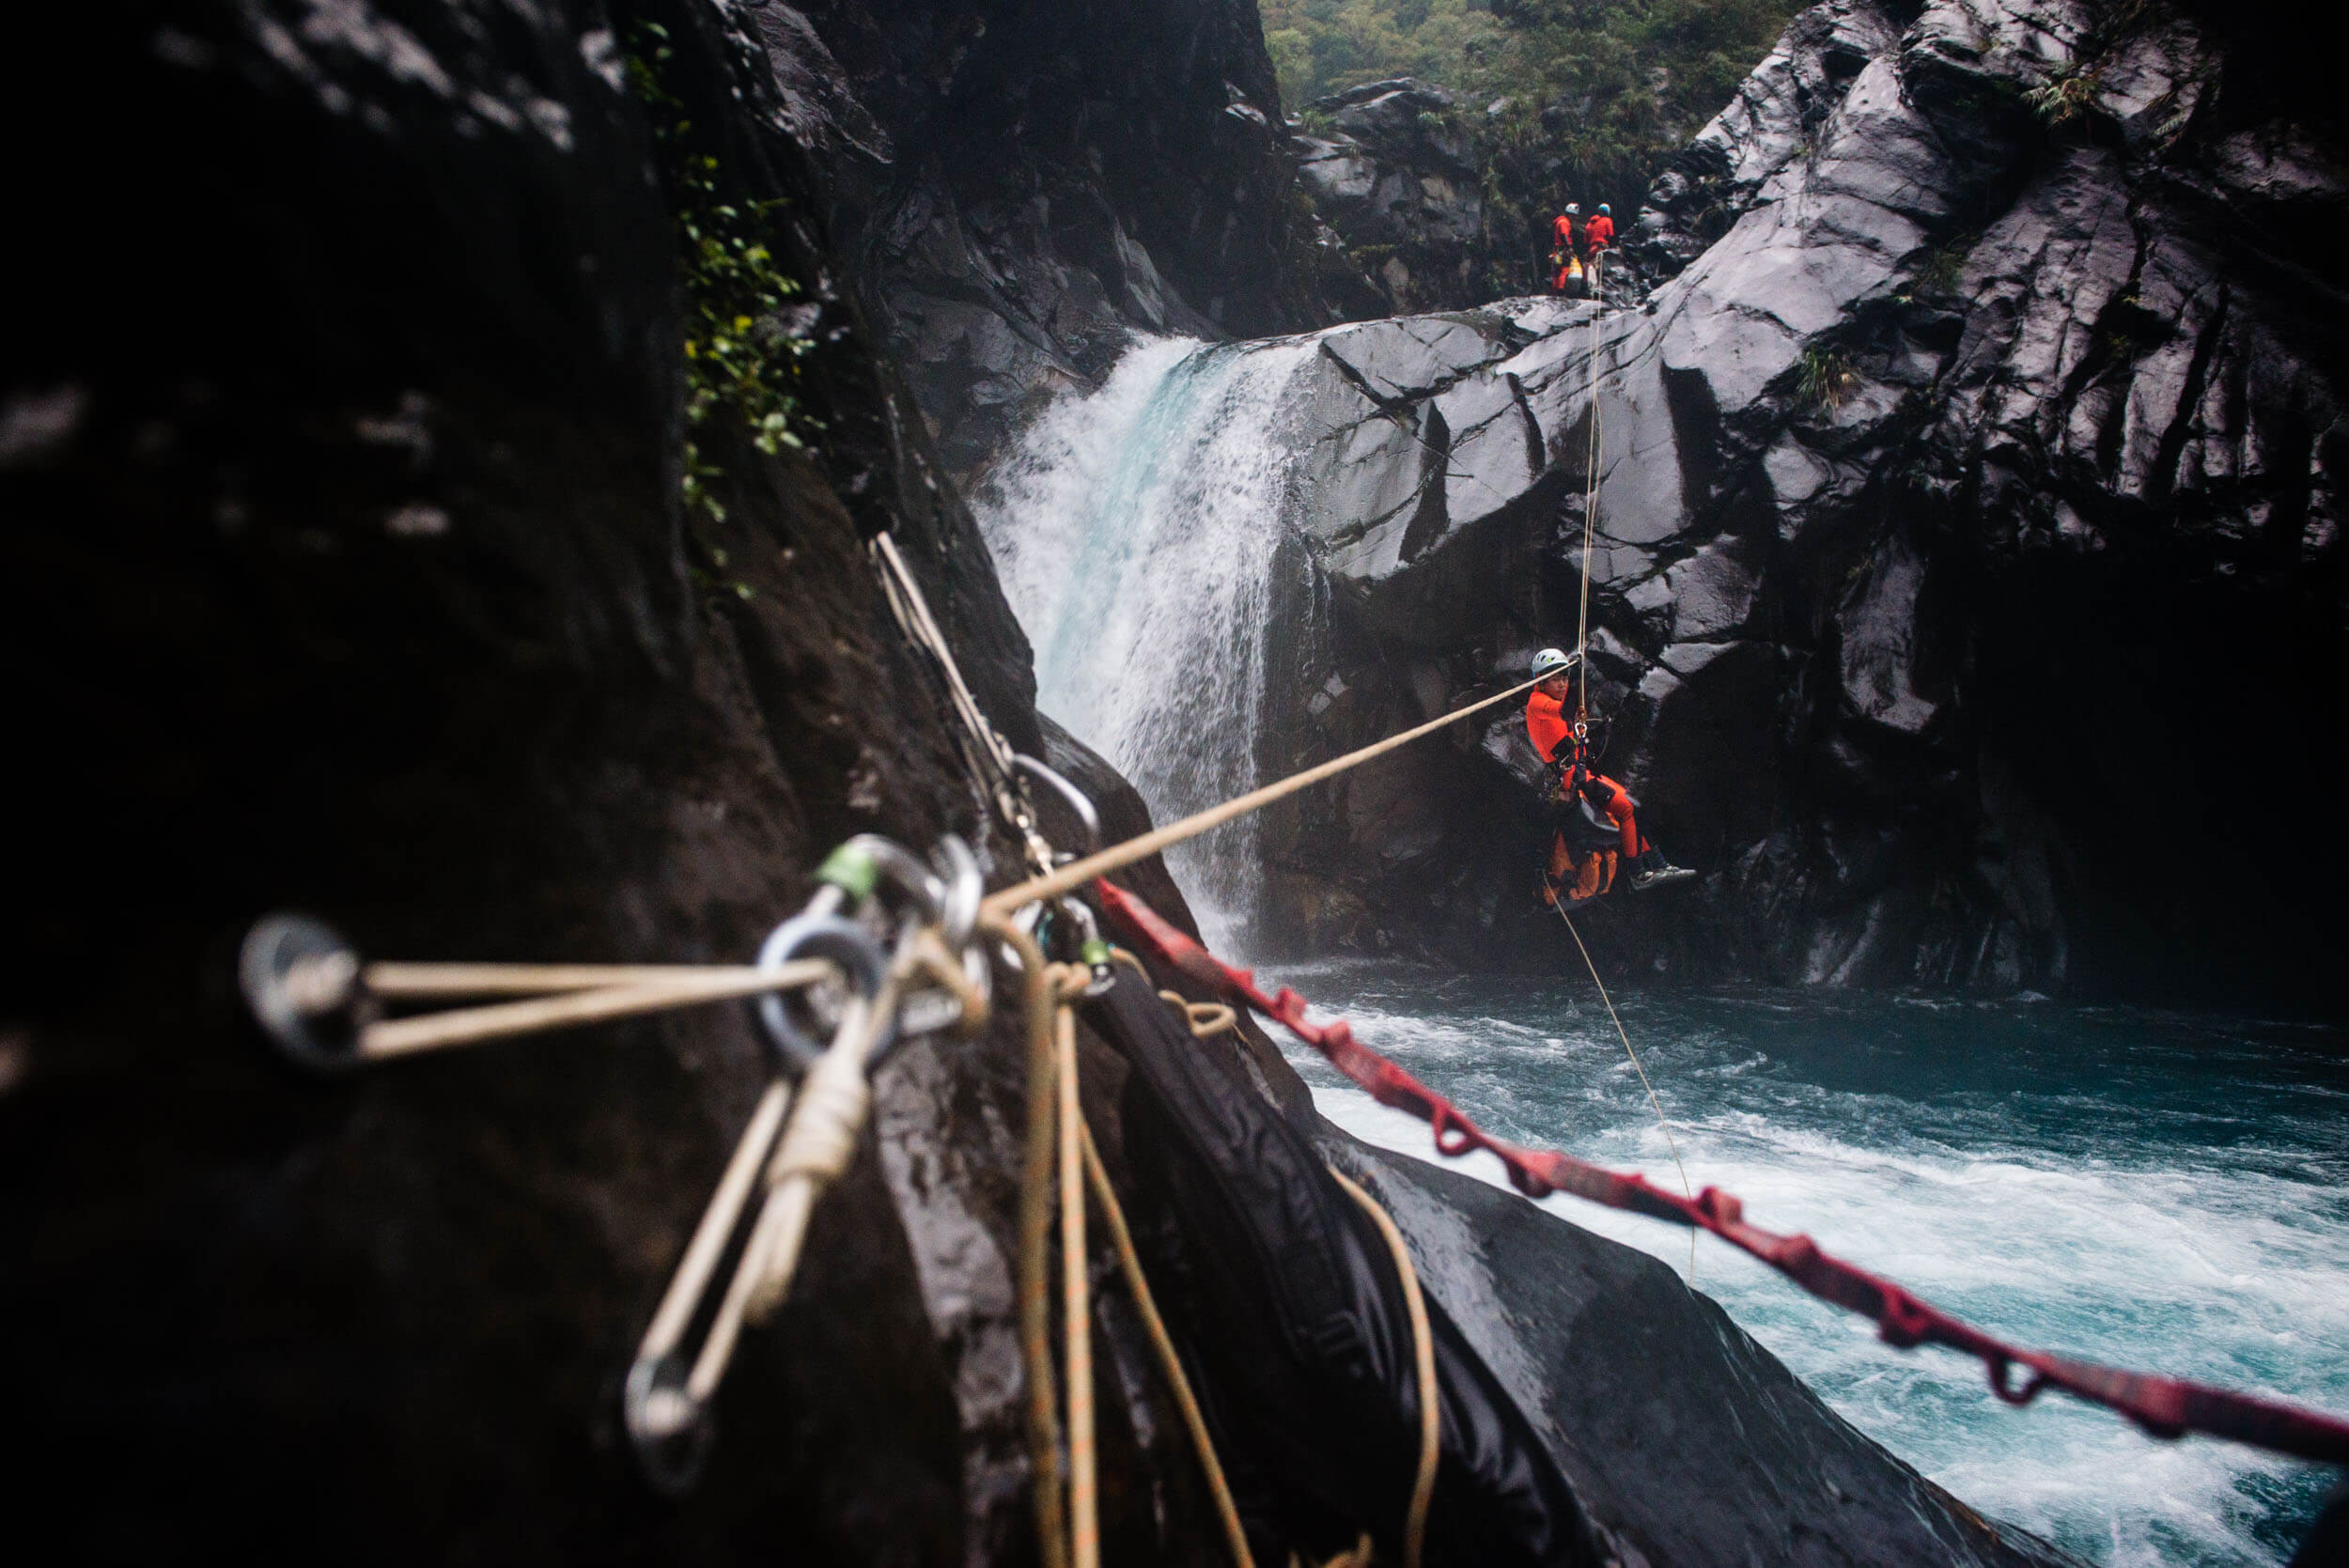 Expedition canyoning descent in Taiwan - Gus Schiavon